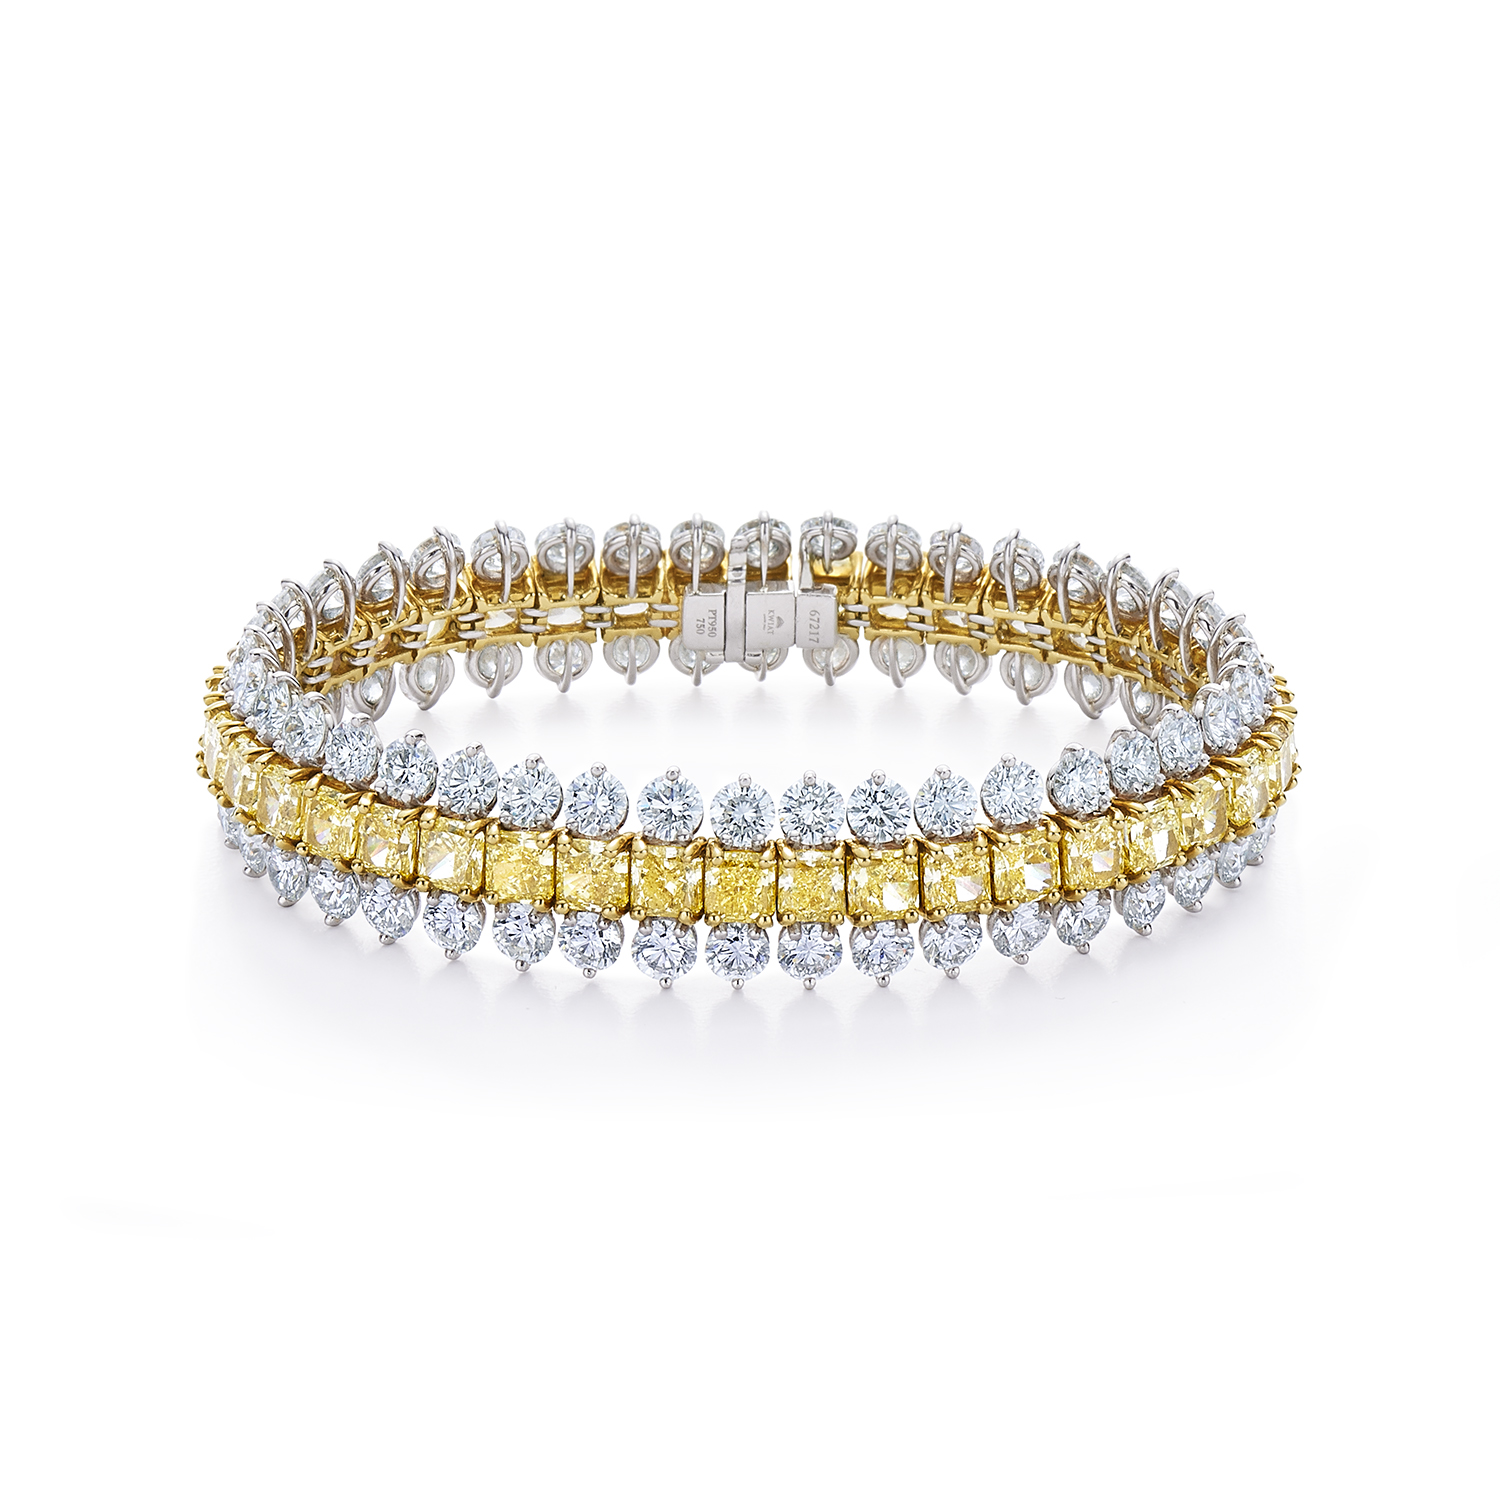 Yellow-and-white-diamond-bracelet-in-platinum-and-yellow-gold-at-DK-Gems-online-platinum-diamond-bracelet-store-and-BEST-St-Maarten-jewelry-stores-s15420_01.jpg